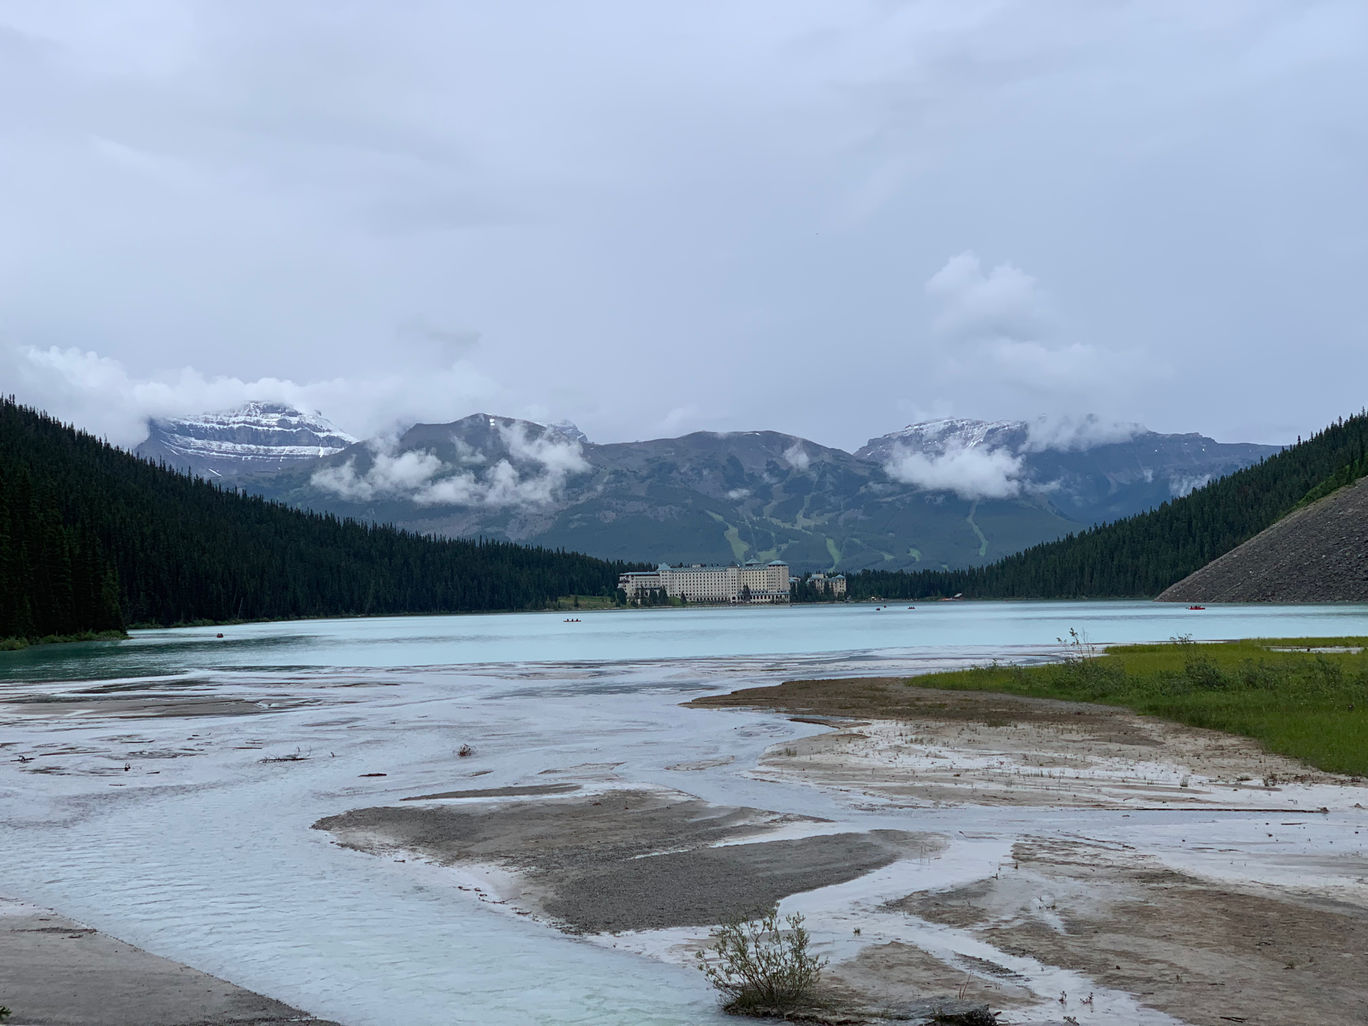 Photo of Photoblog: A stunning day trek - The Plain of Six Glaciers, Alberta Canada #DayTrekWonders By Mr n Mrs Traveler